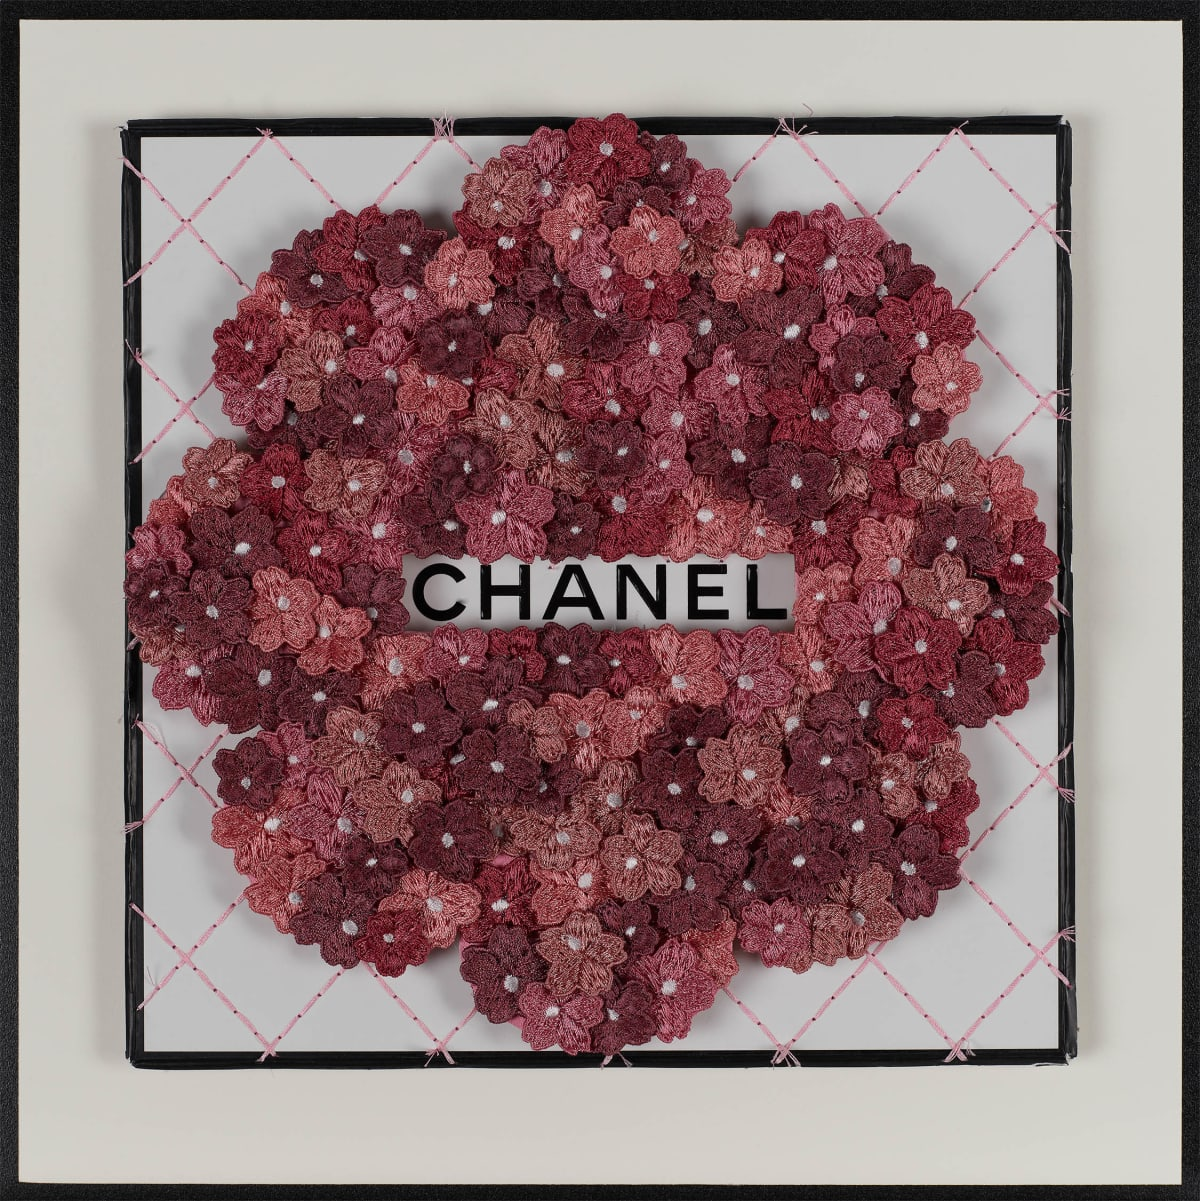 Stephen Wilson, Chanel Flower Flower, Wine, 2019